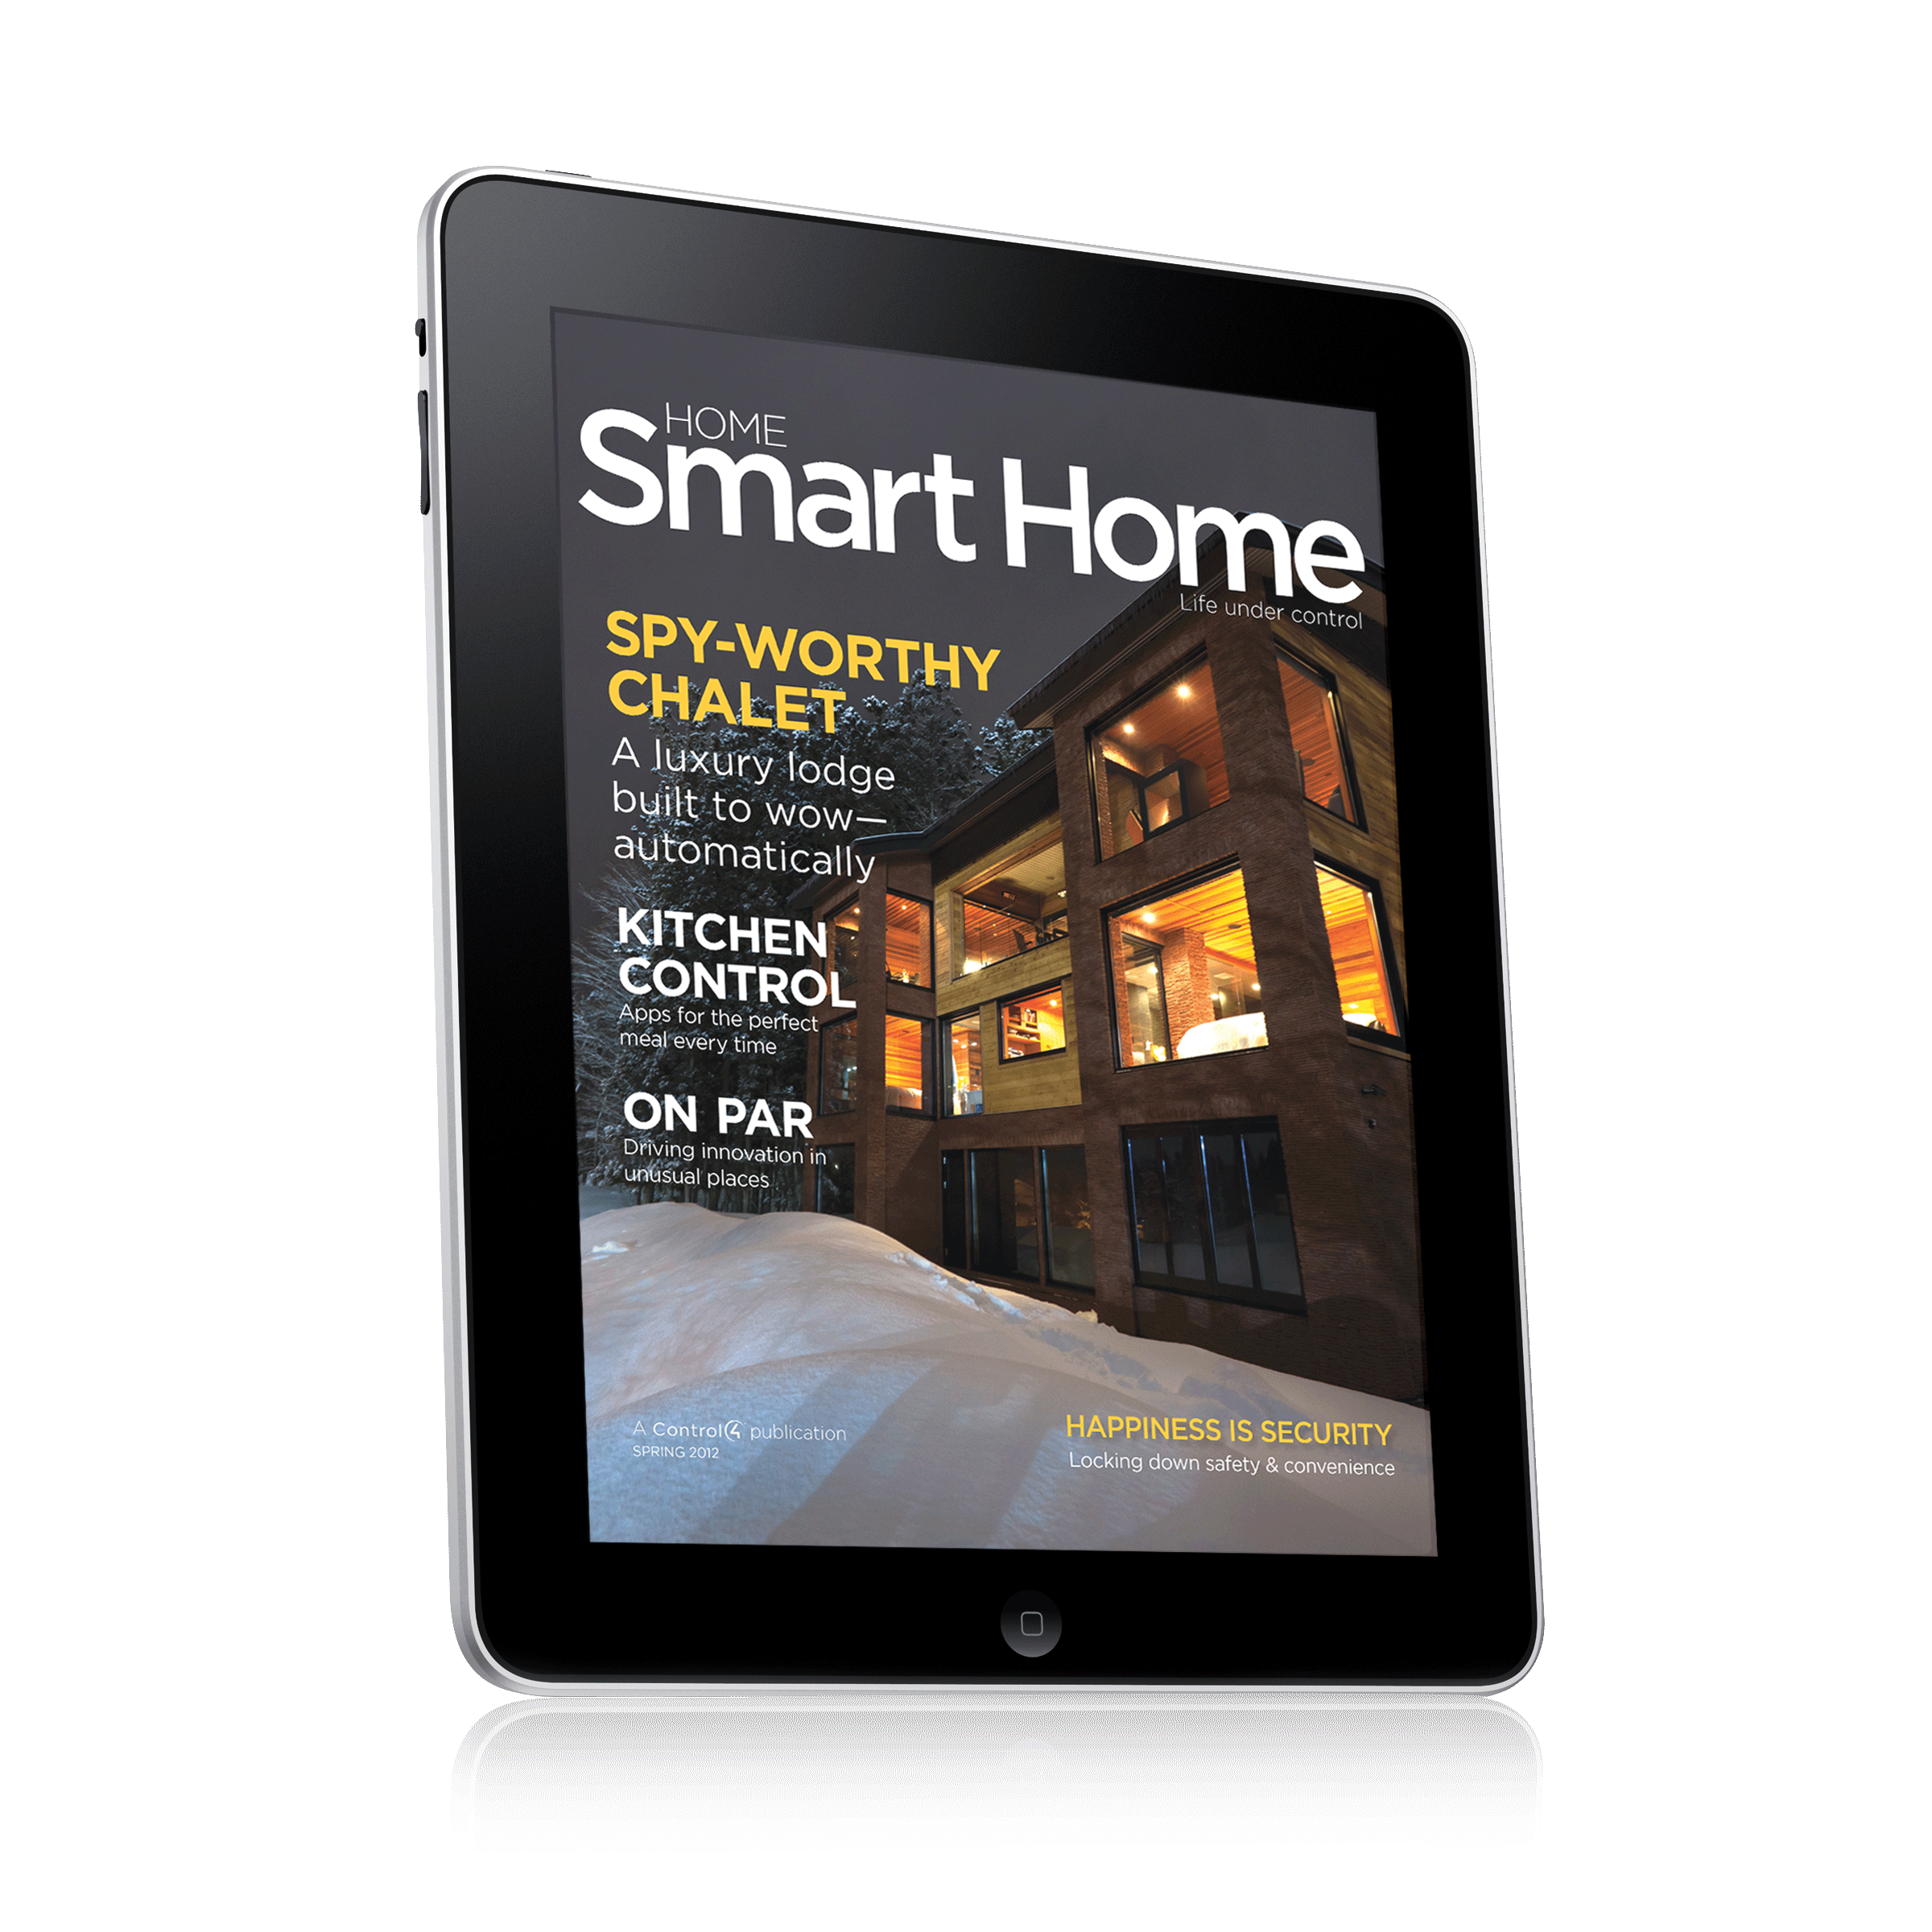 home smart home digitized home automation blog